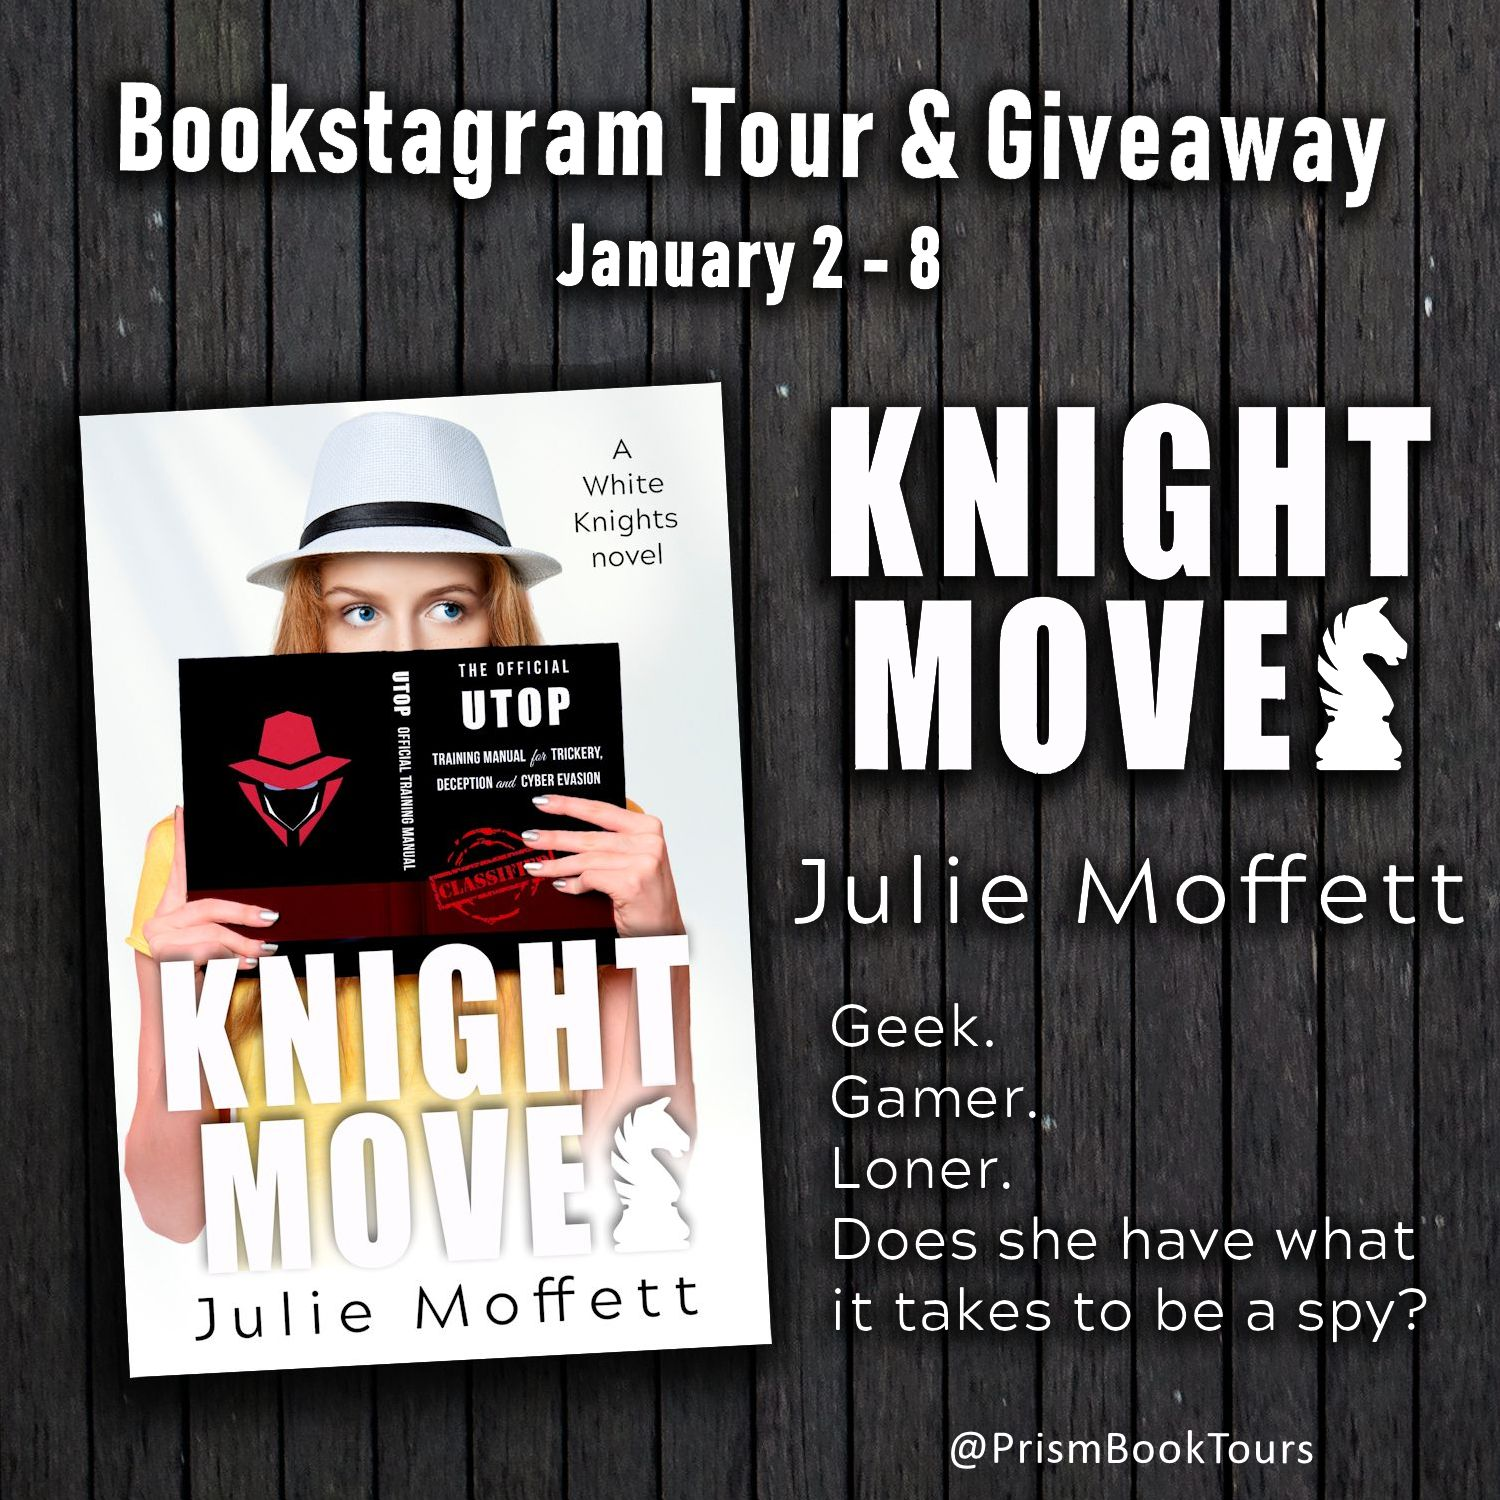 Check out the Bookstagram Tour for KNIGHT MOVES by Julie Moffett!